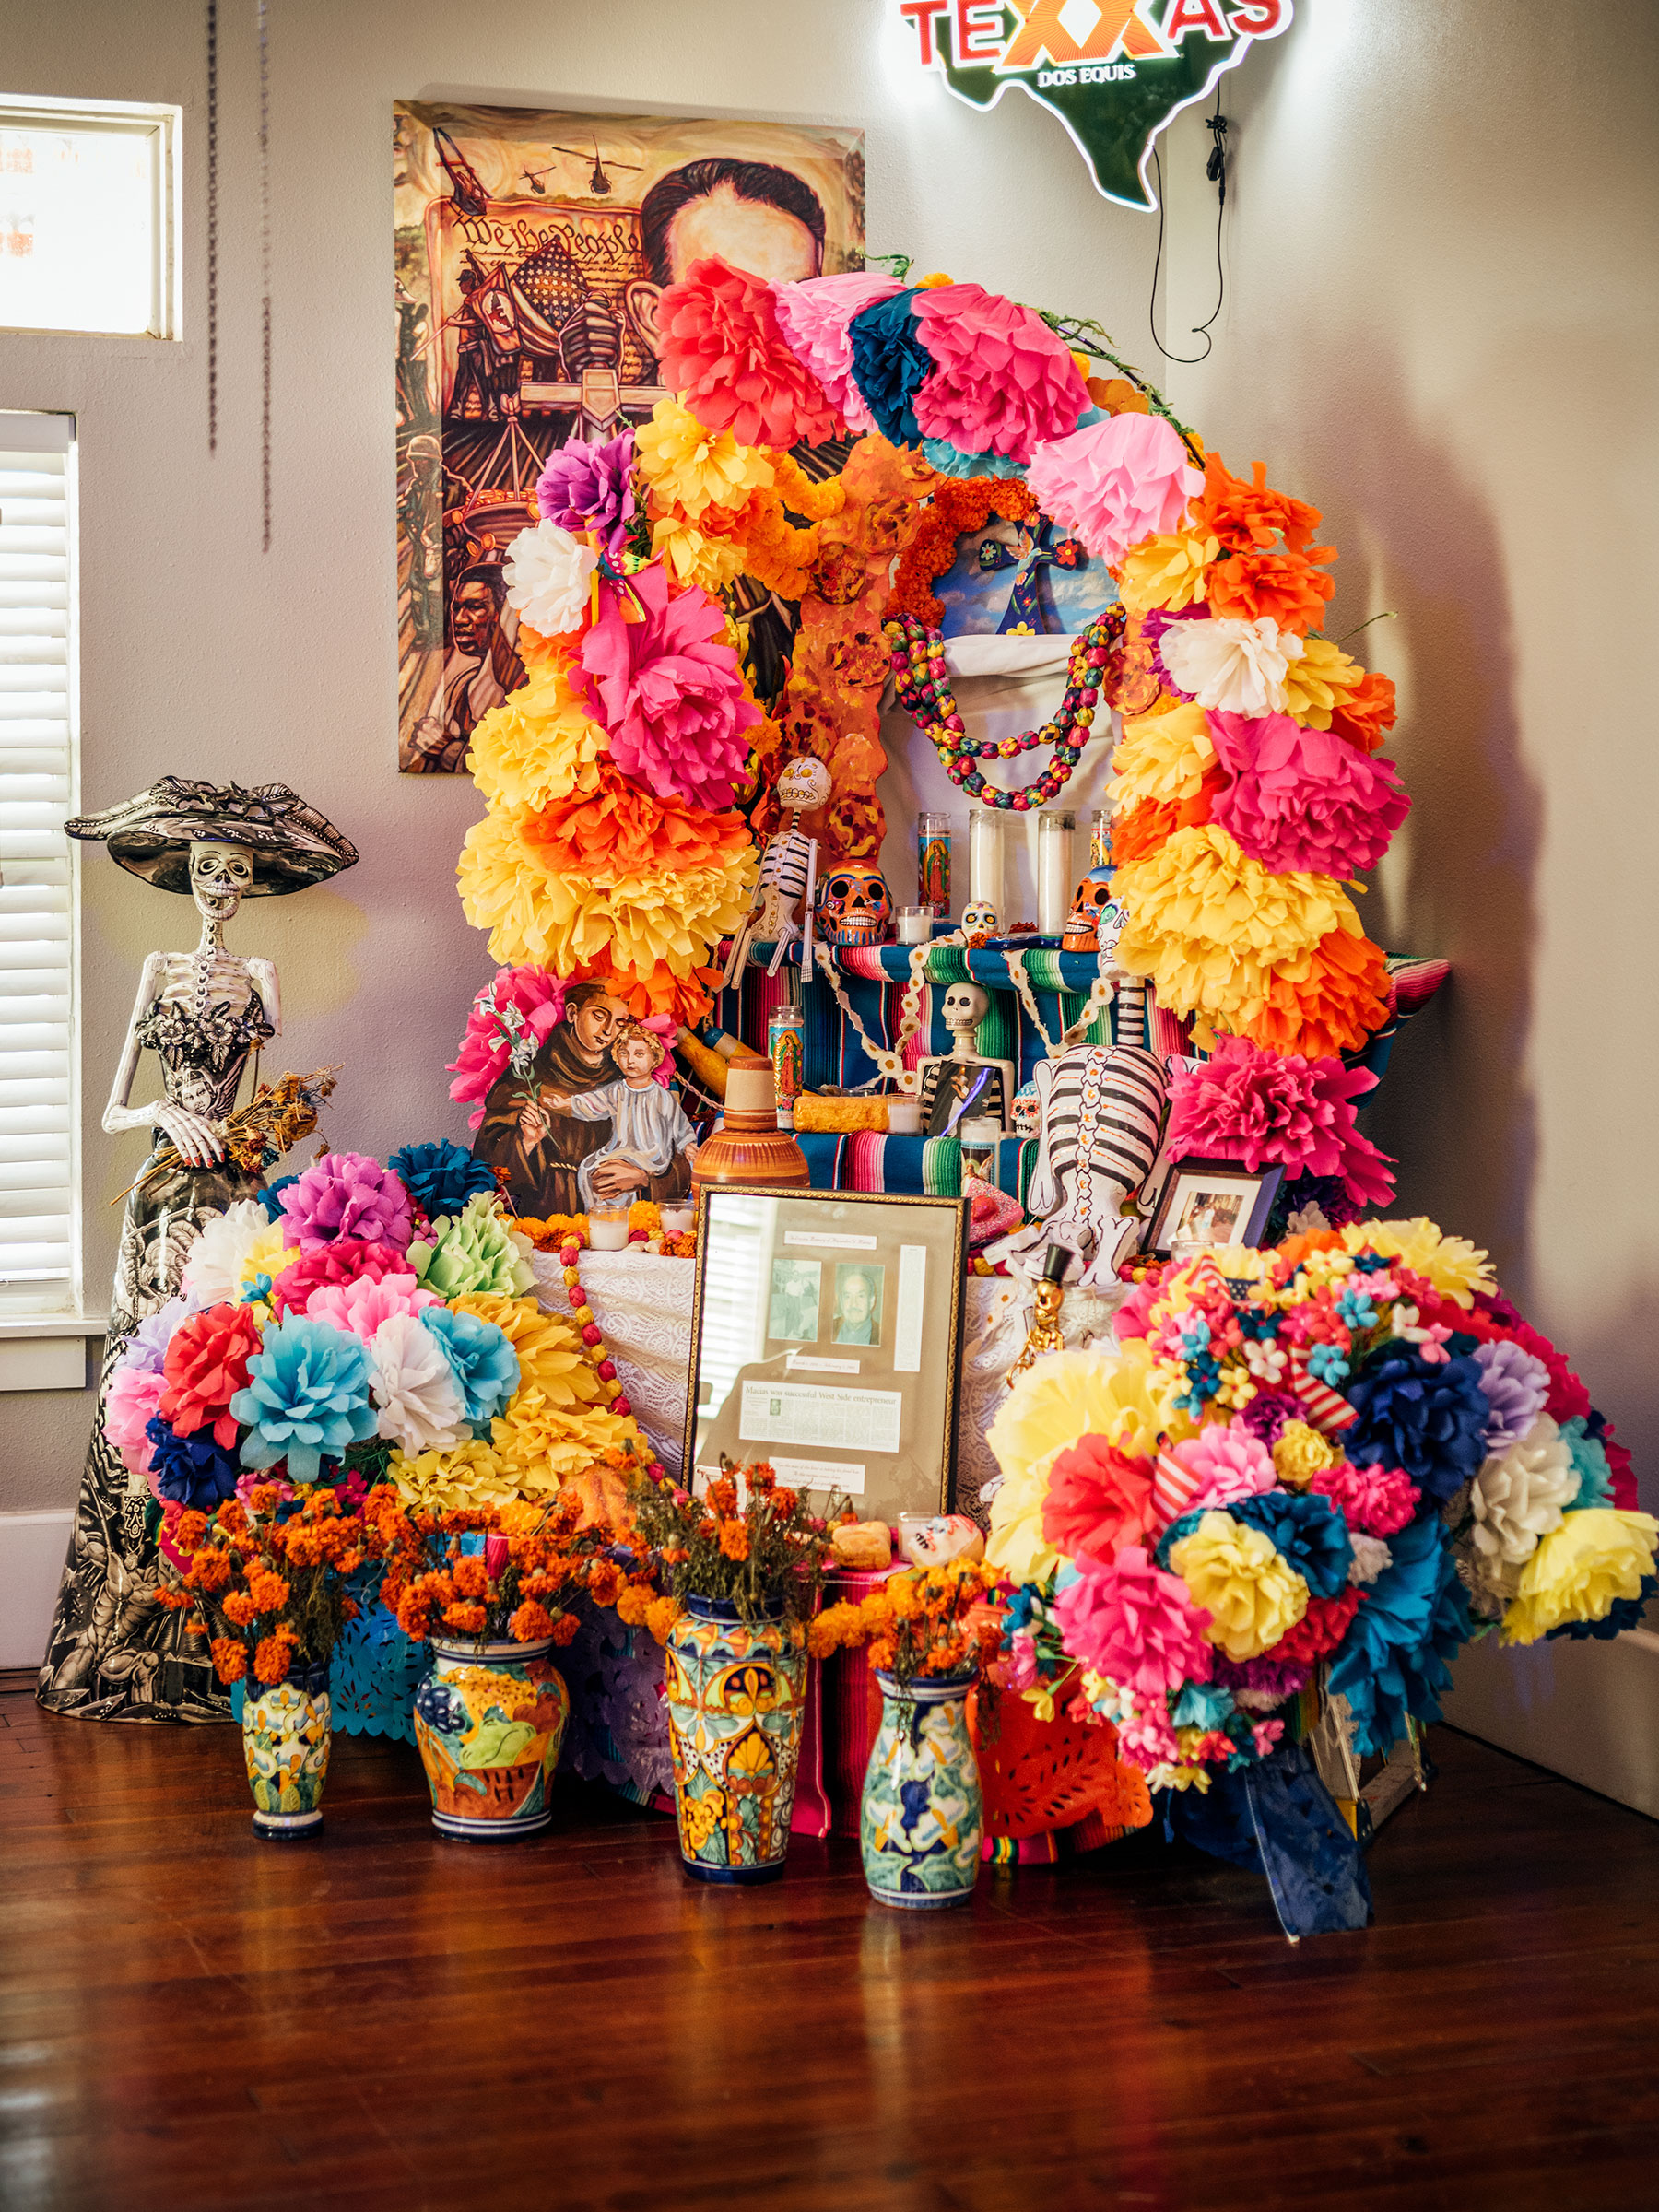 An altar, designed by artist Ana Laura Hernandez, is on display at Jaime's Place for community members to bring  ofrendas  or offerings for Dia de los Muertos, or Day of the Dead.